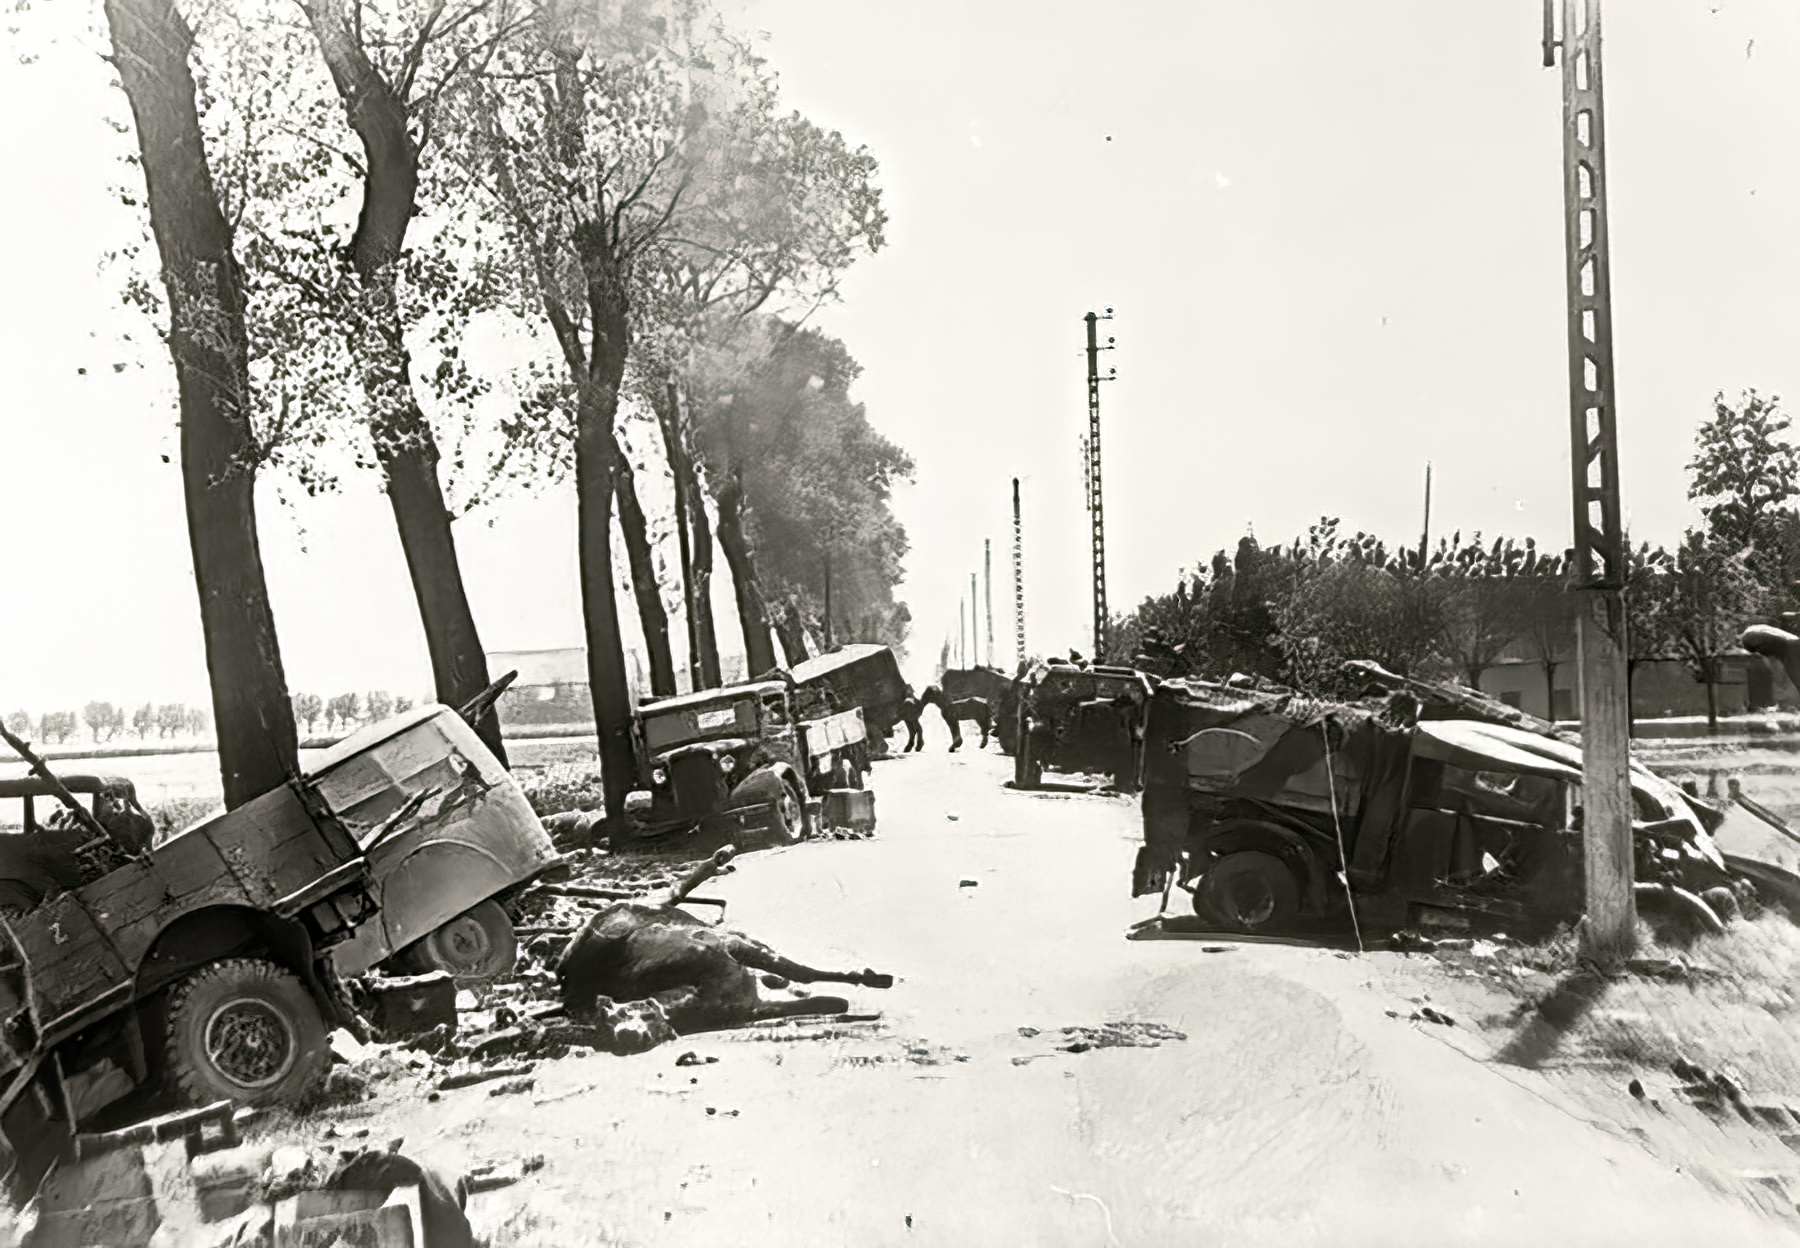 Dunkirk roads littered with destroyed vehicles after the BEF withdrawal from France 12th Jun 1940 01